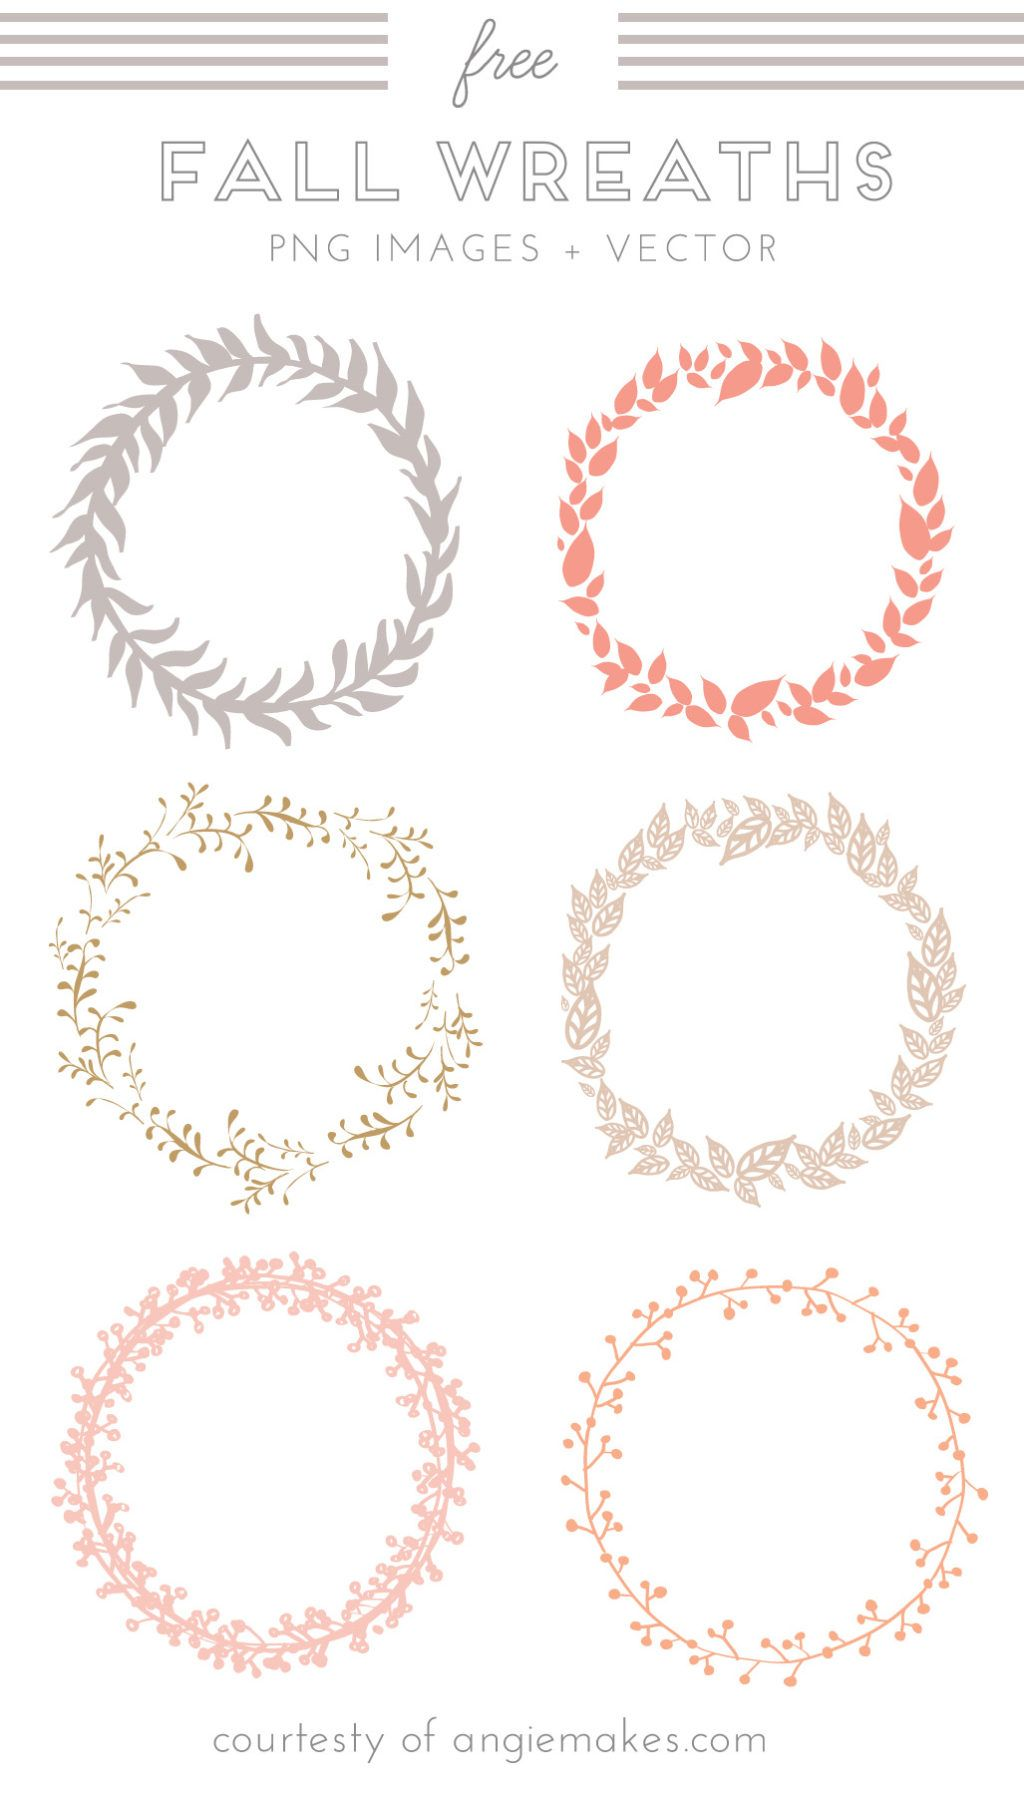 0497350da6d7b Enjoy This Collection of Free Girly Graphics and Watercolor Clip Art  Courtesy of Angie Makes. These Cute, Girly Clip Art Images Are Totally FREE!